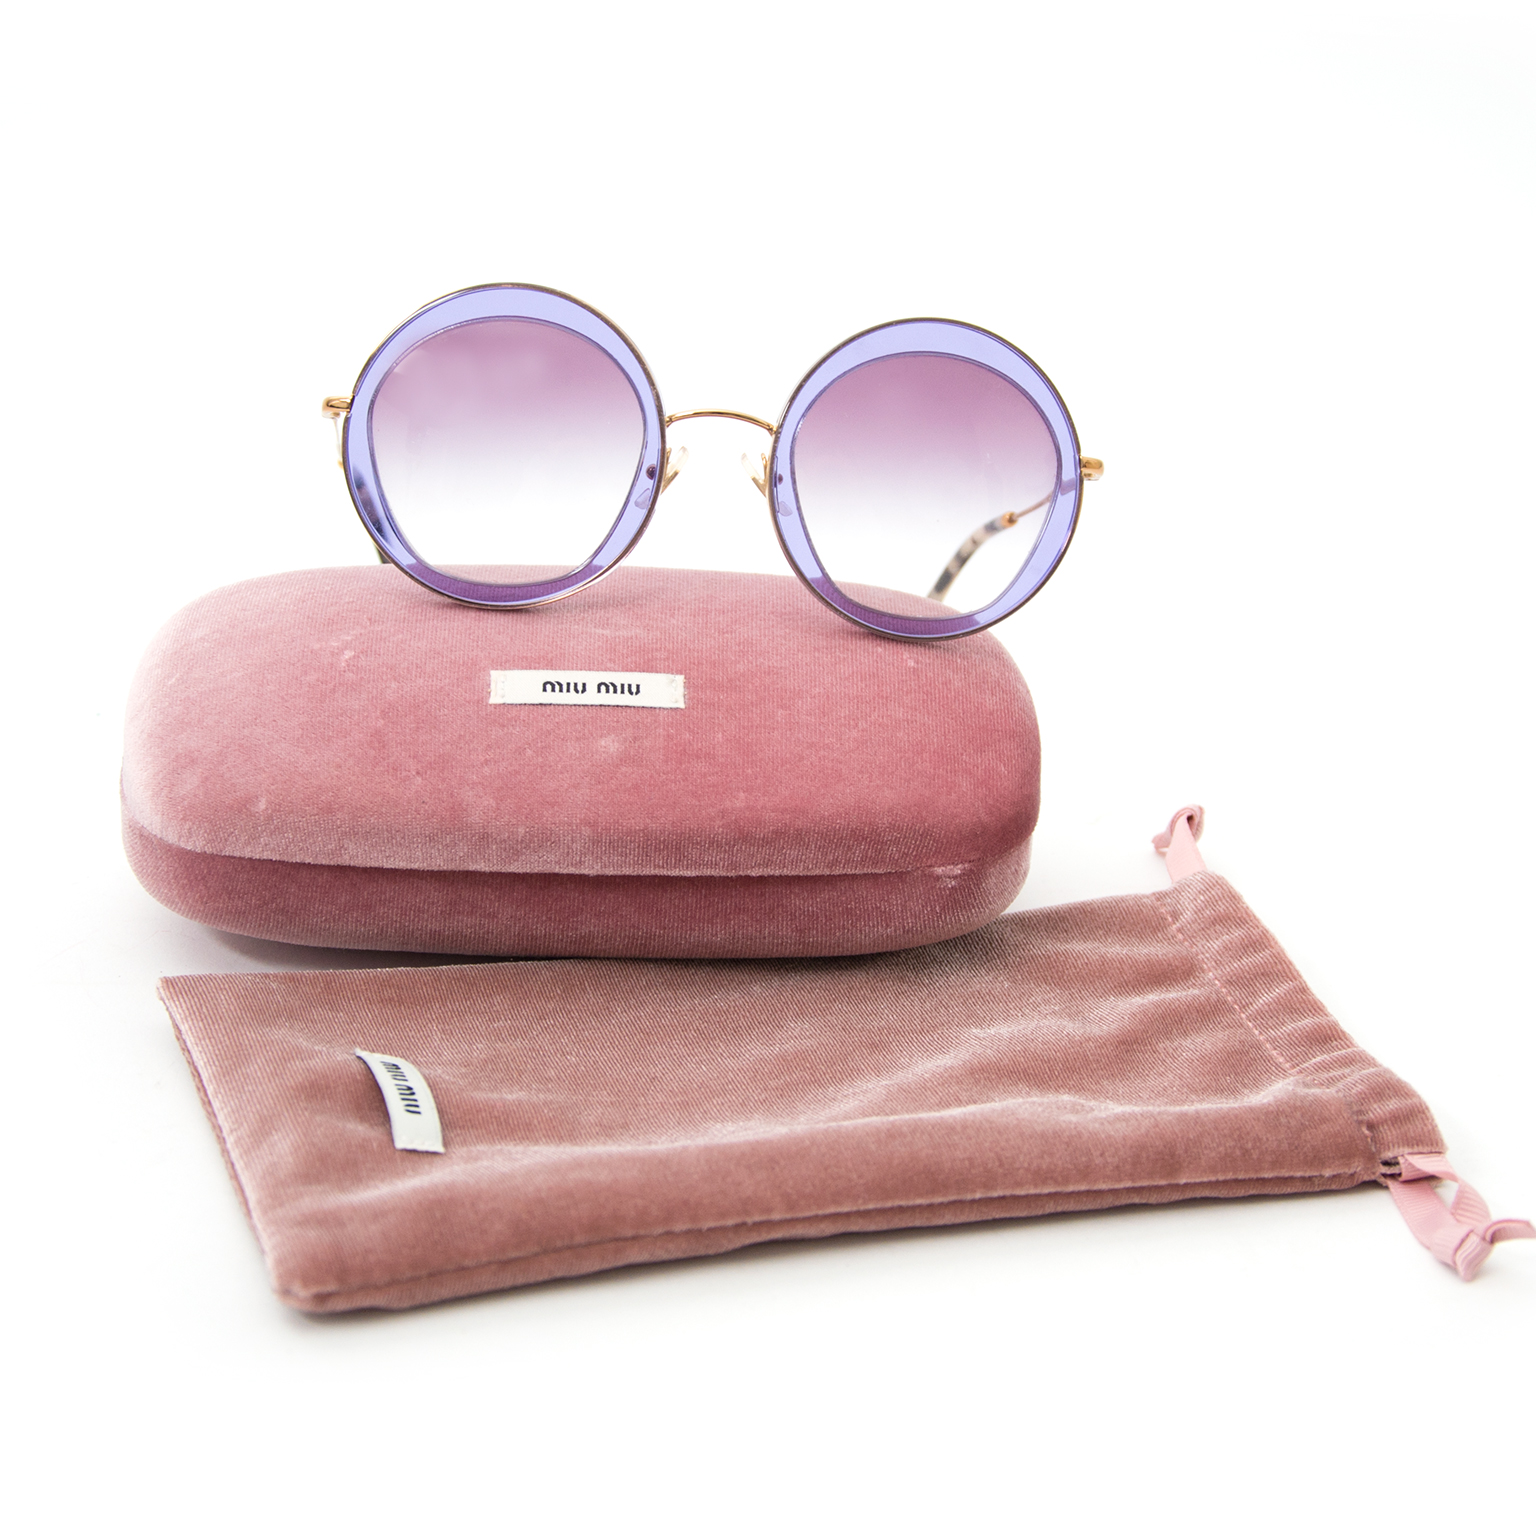 shop safe online secondhand Miu Miu Appliquéd Round Frame Sunglasses